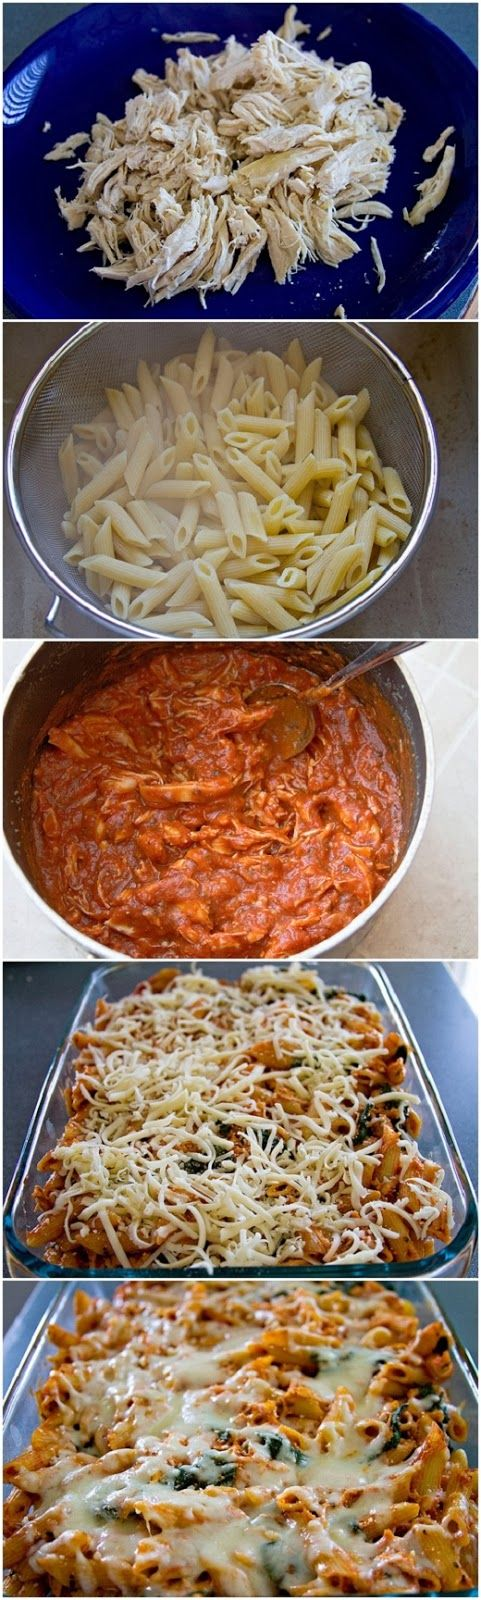 Ingredients:  1 (16 oz) box regular or whole wheat penne pasta  2 chicken breasts  6 ounces fresh baby spinach leaves  1 tsp basil  1 tsp ...